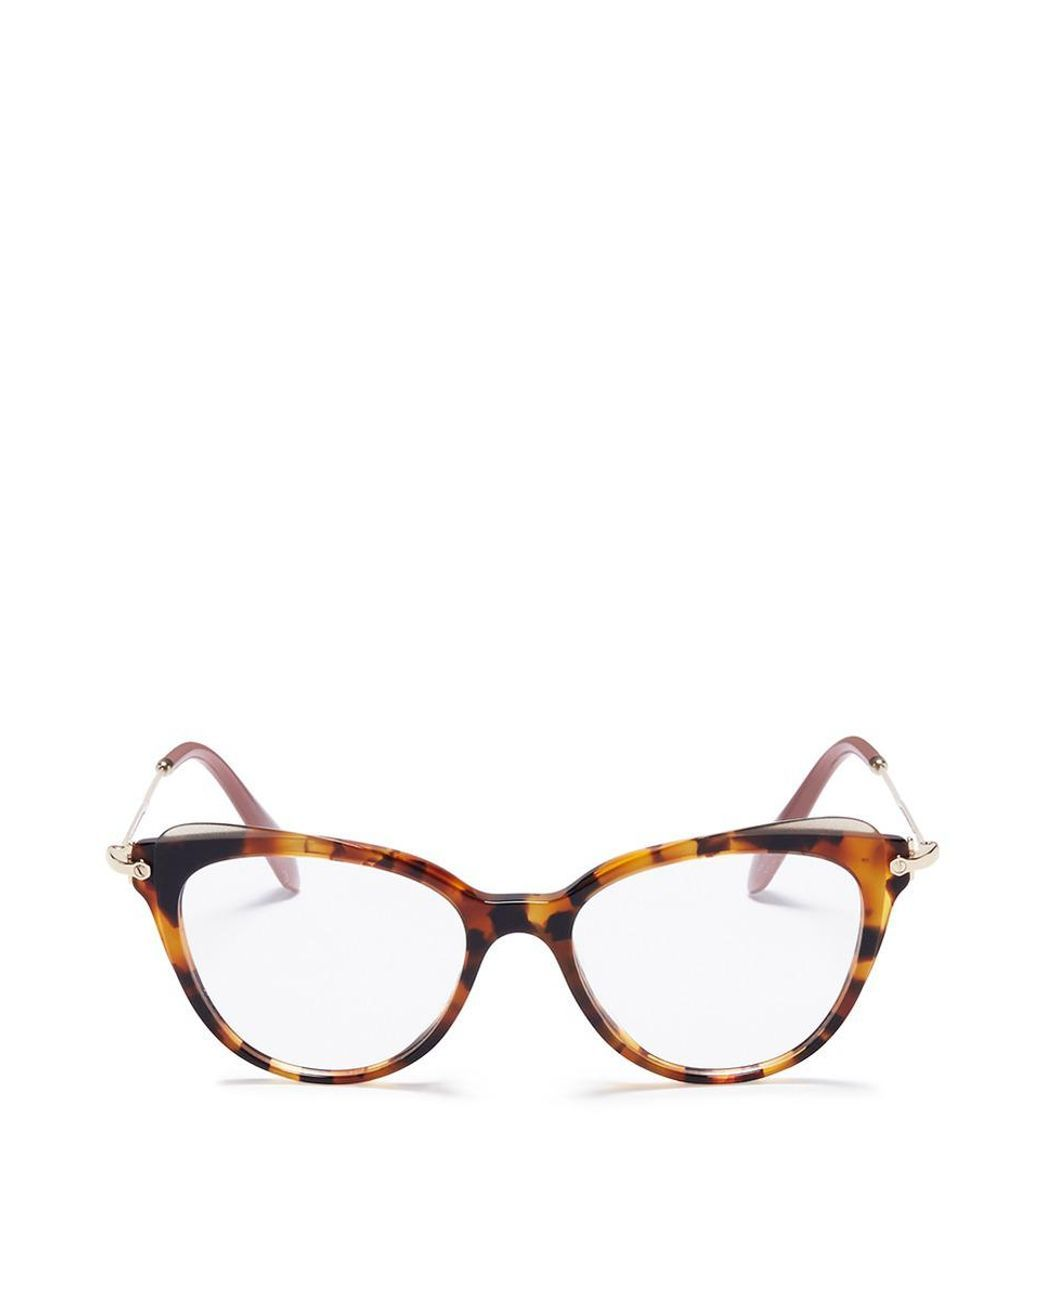 40f776902c0f Women s Brown Tortoiseshell Acetate Cat Eye Optical Glasses ...